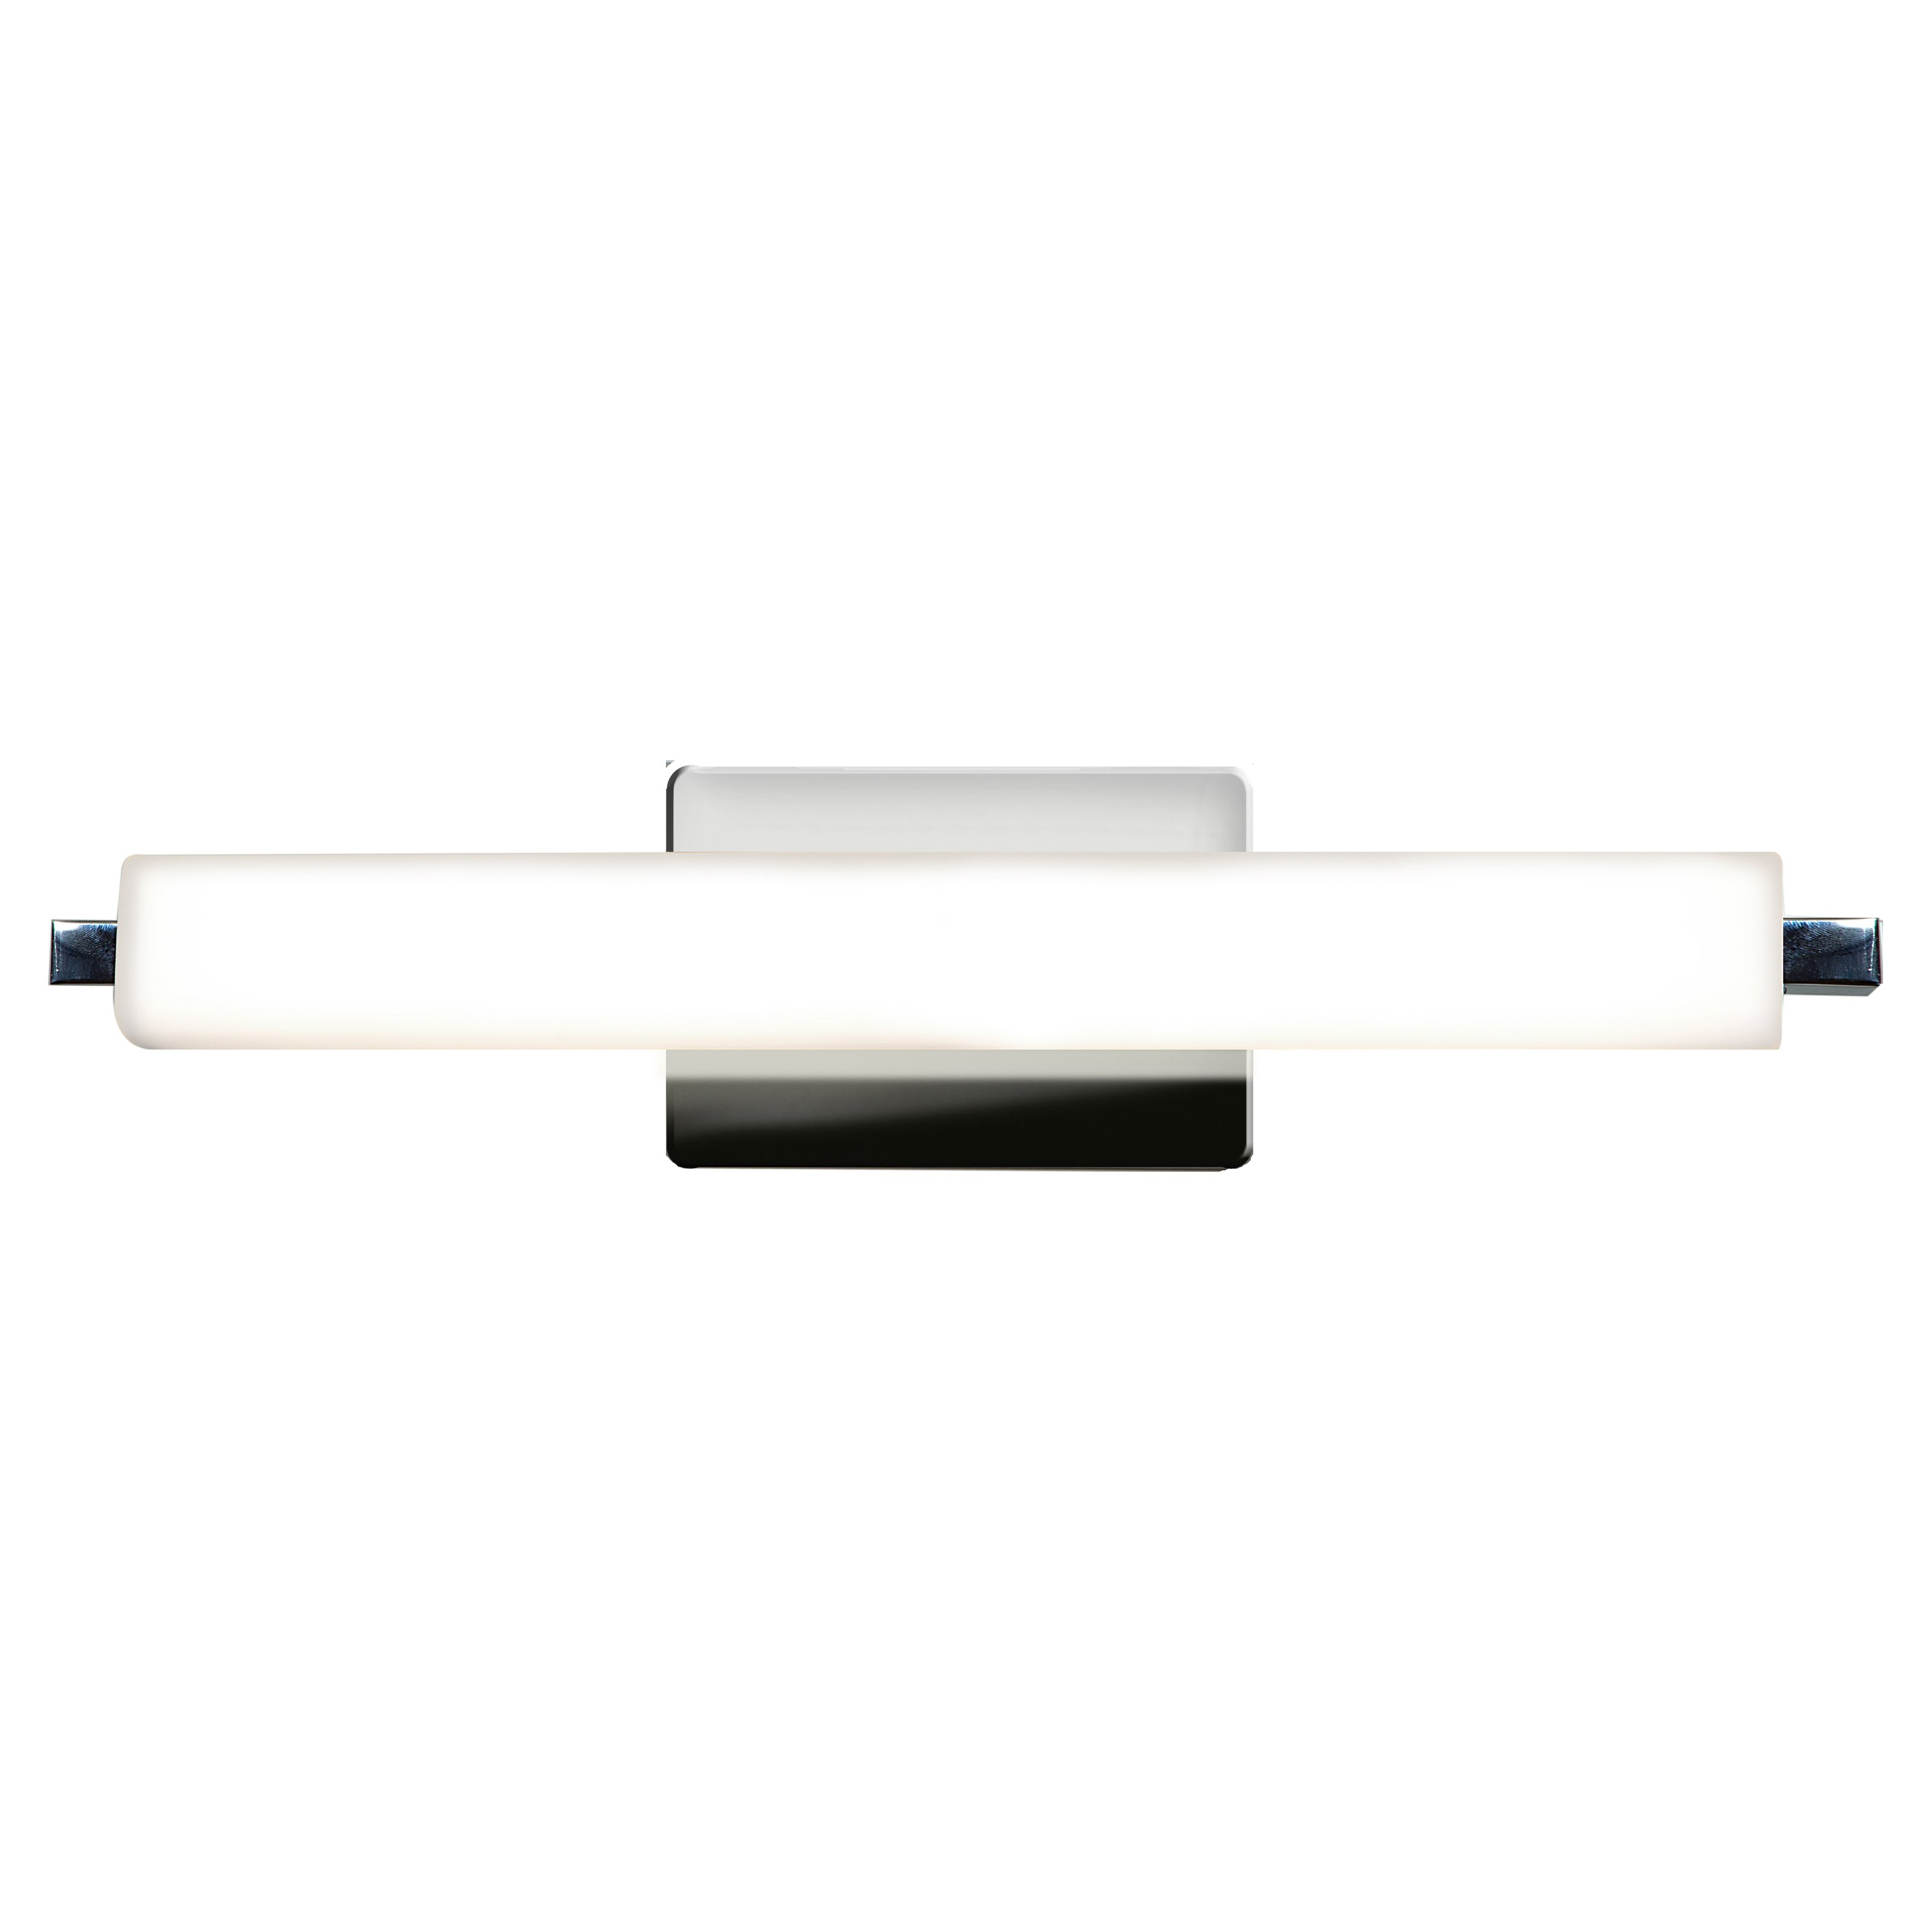 Access Lighting Chic 70035 Bathroom Vanity Light by Access Lighting